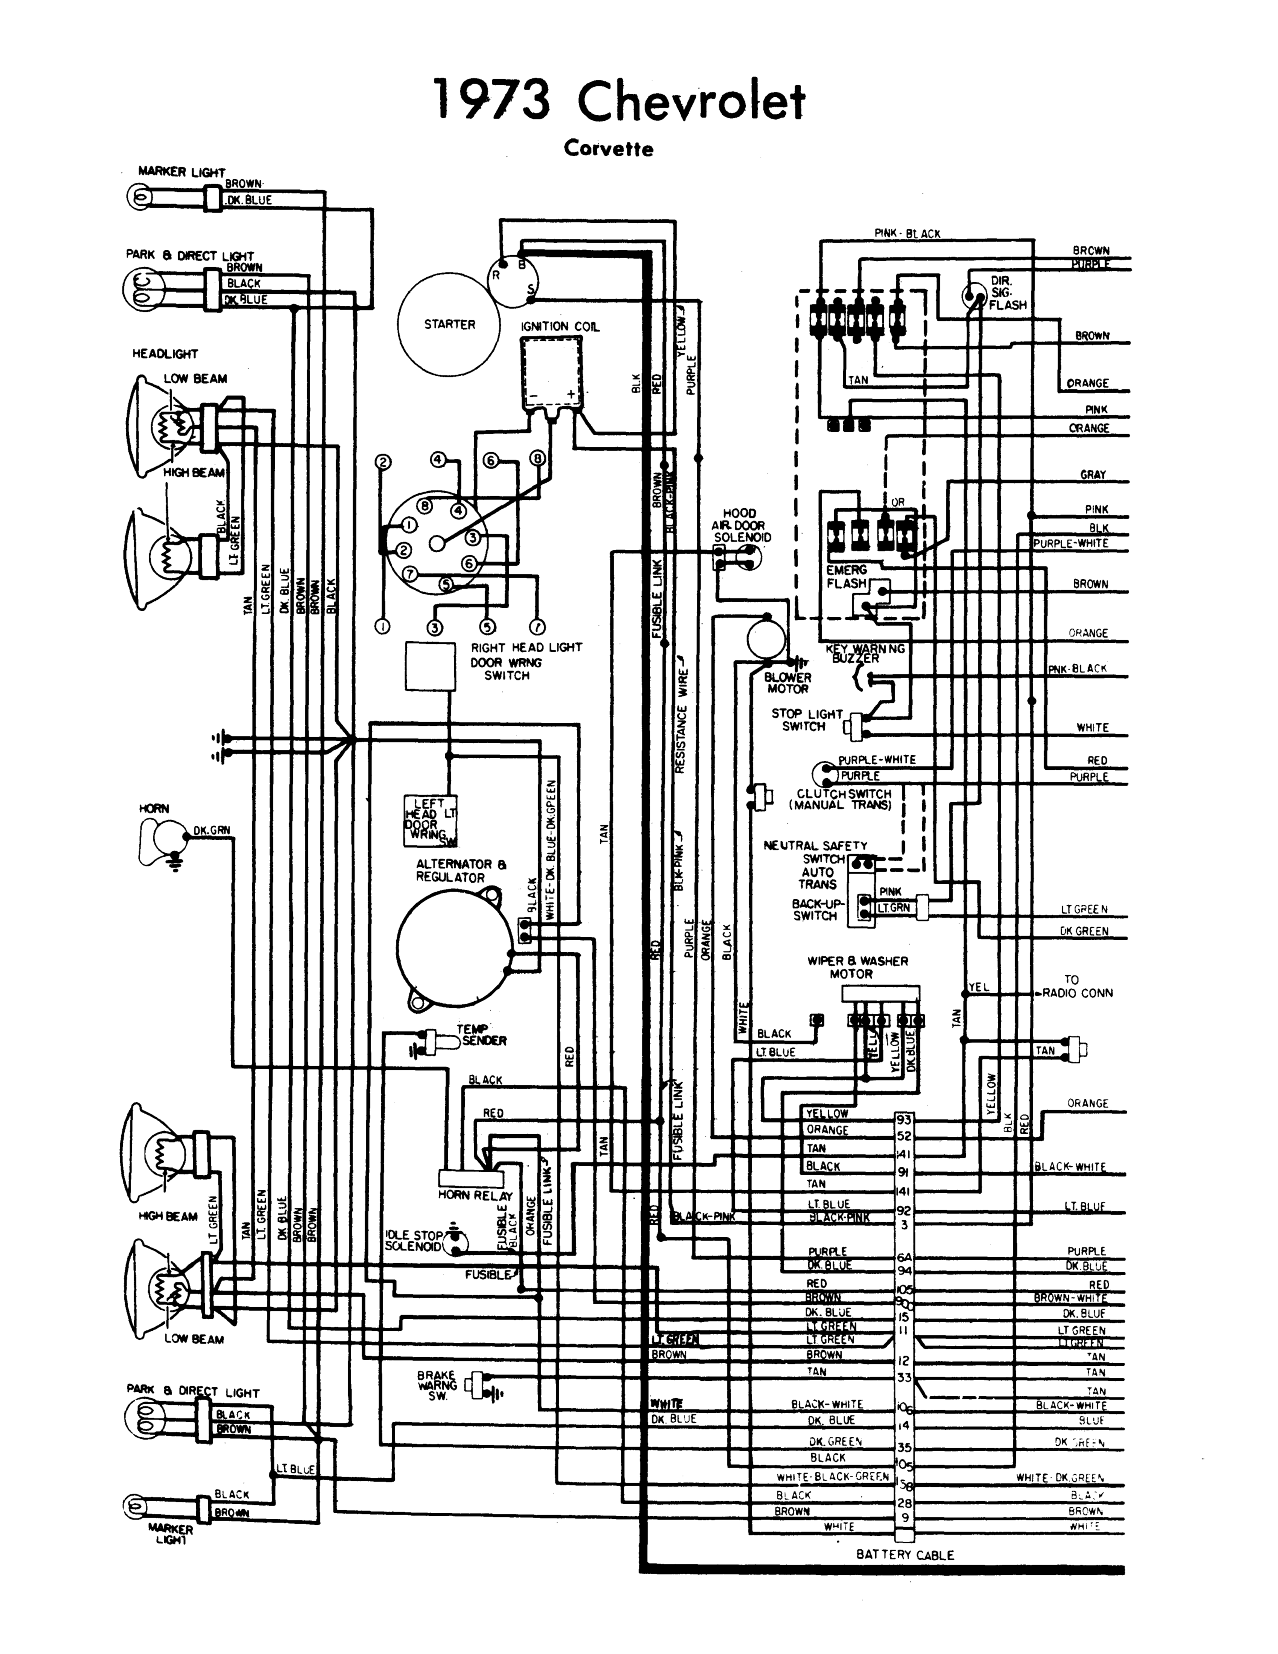 1973 Corvette Wiring Diagram